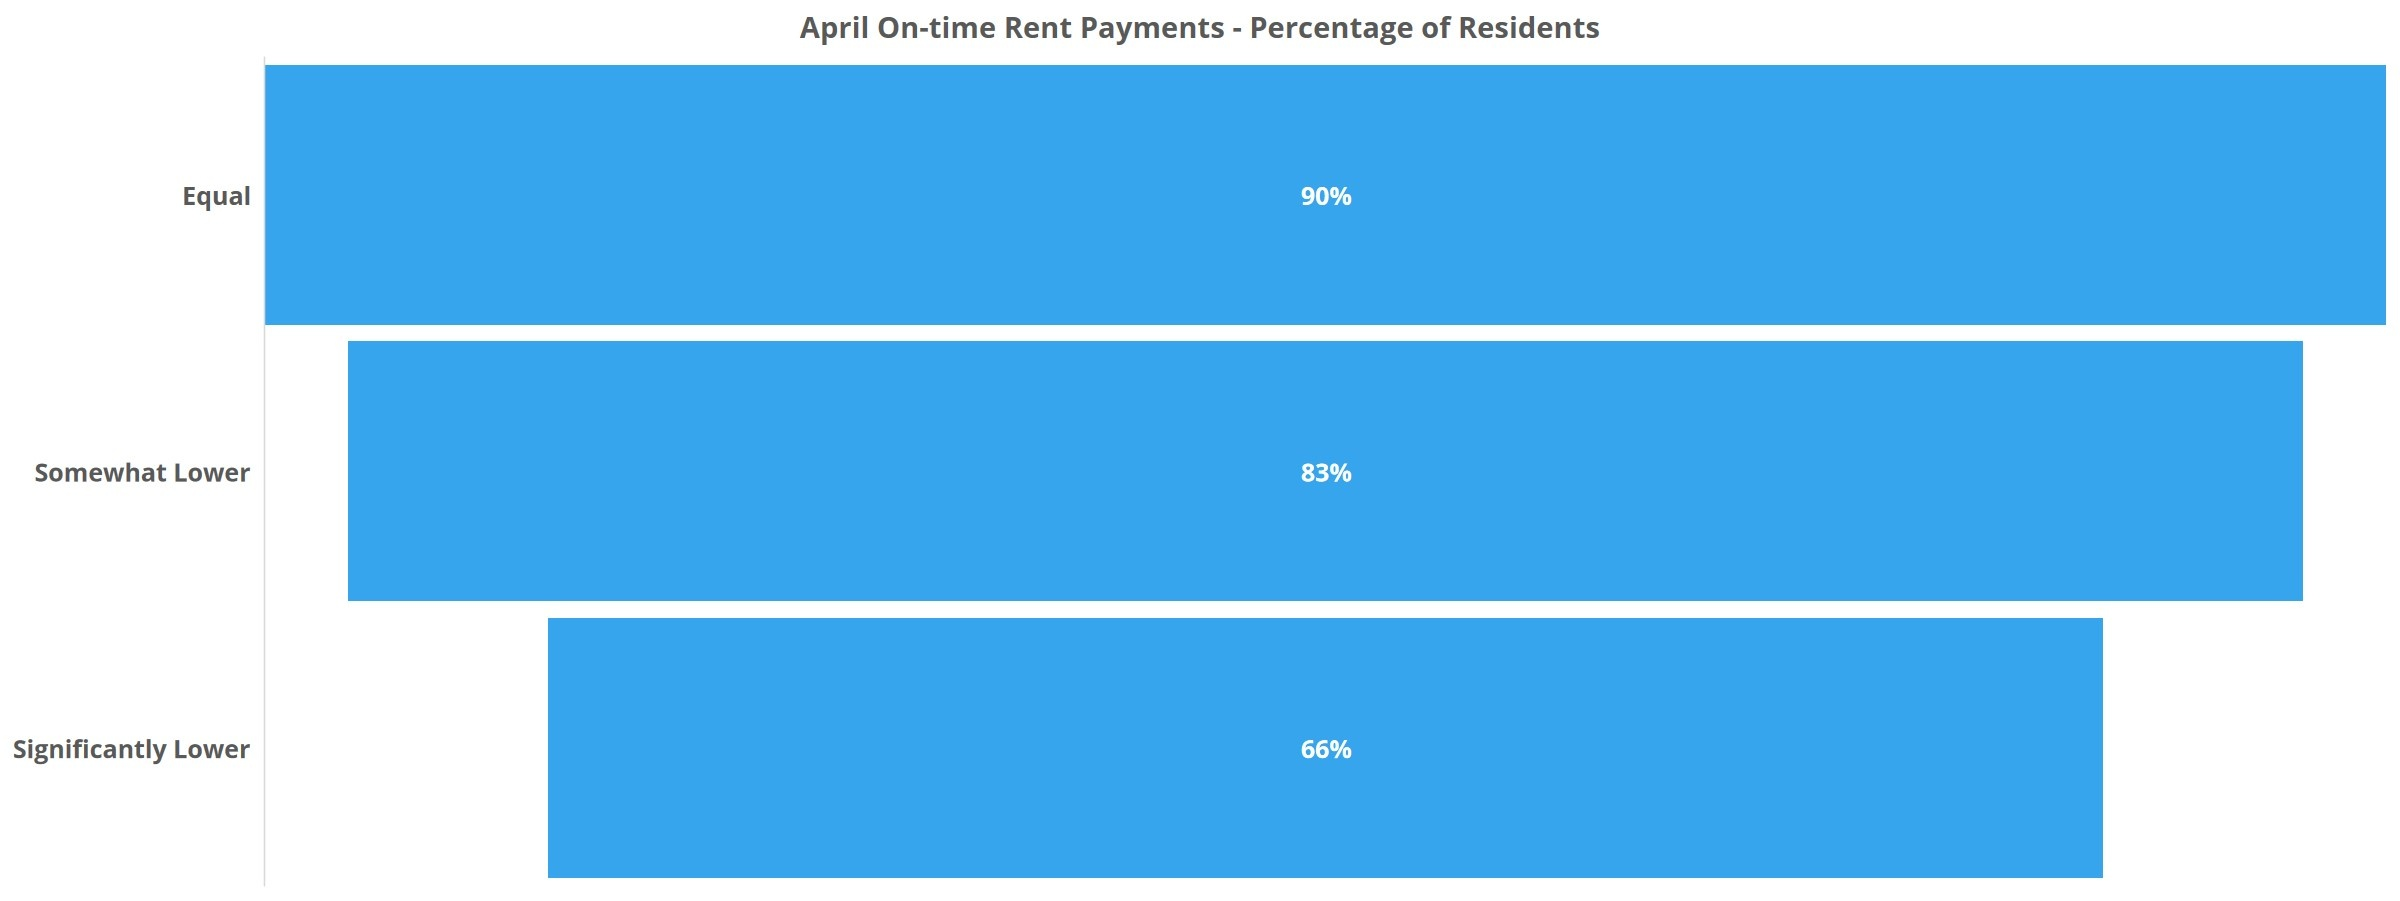 April On-time Rent Payments Percentage of Residents